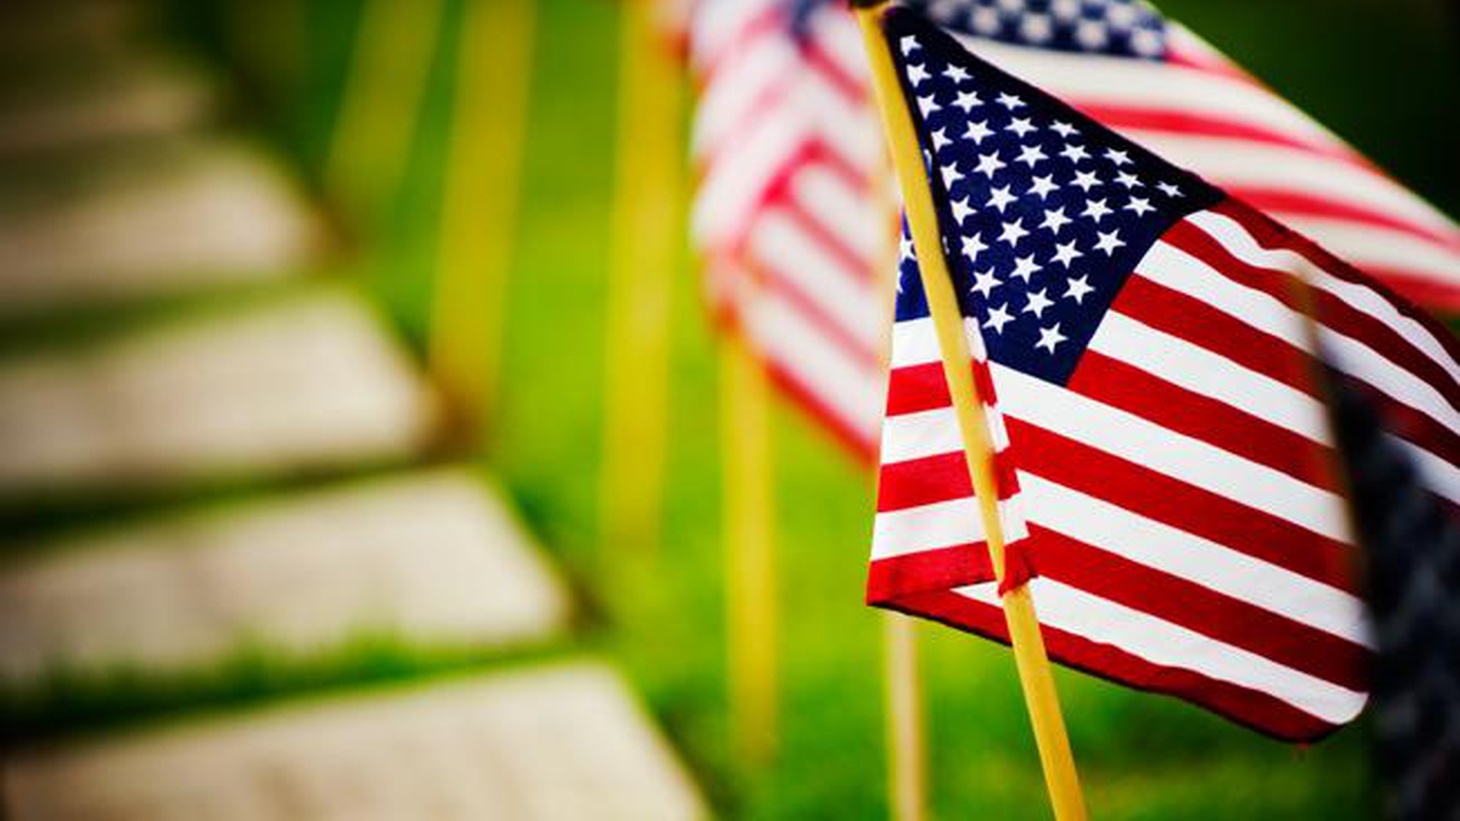 Memorial Day is a holiday dedicated to America's war dead, but which is spent in very different ways in different cities, towns, neighborhoods and by different individuals.